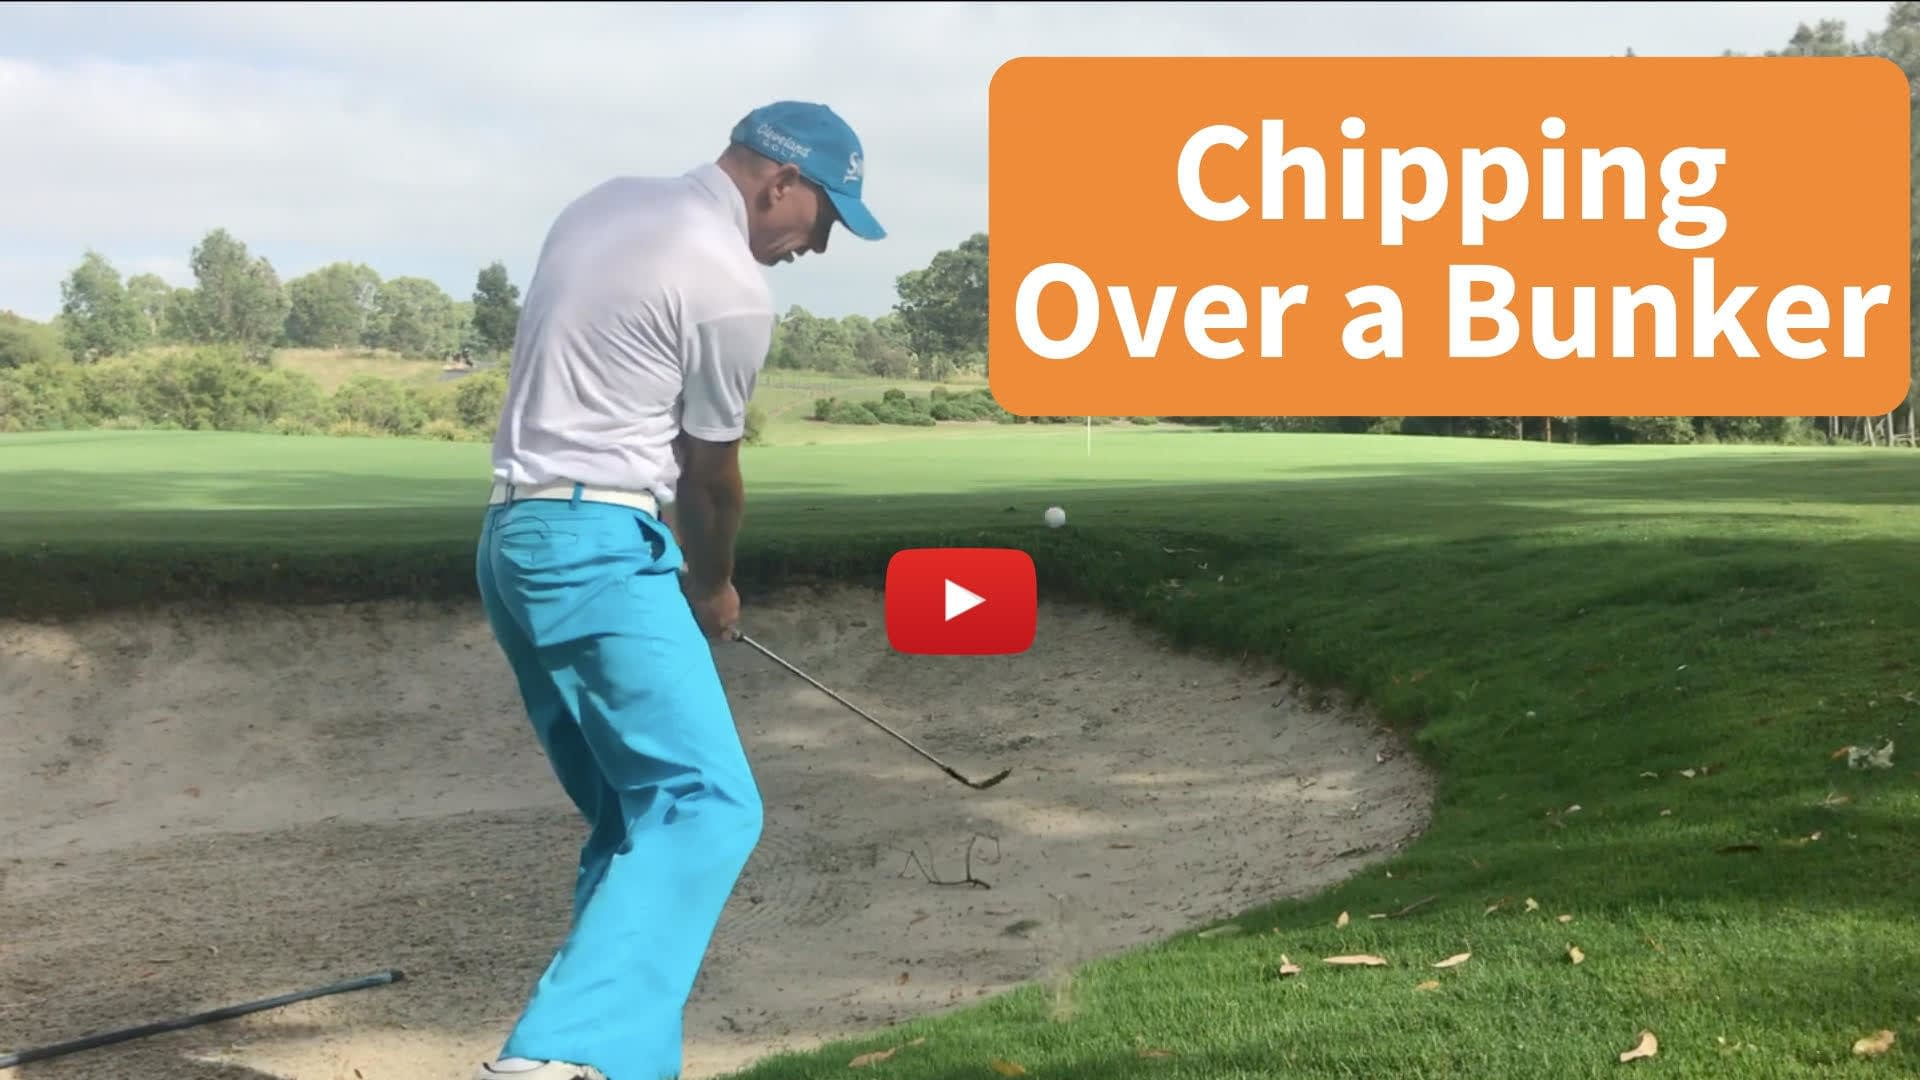 Downhill Chip over a bunker.